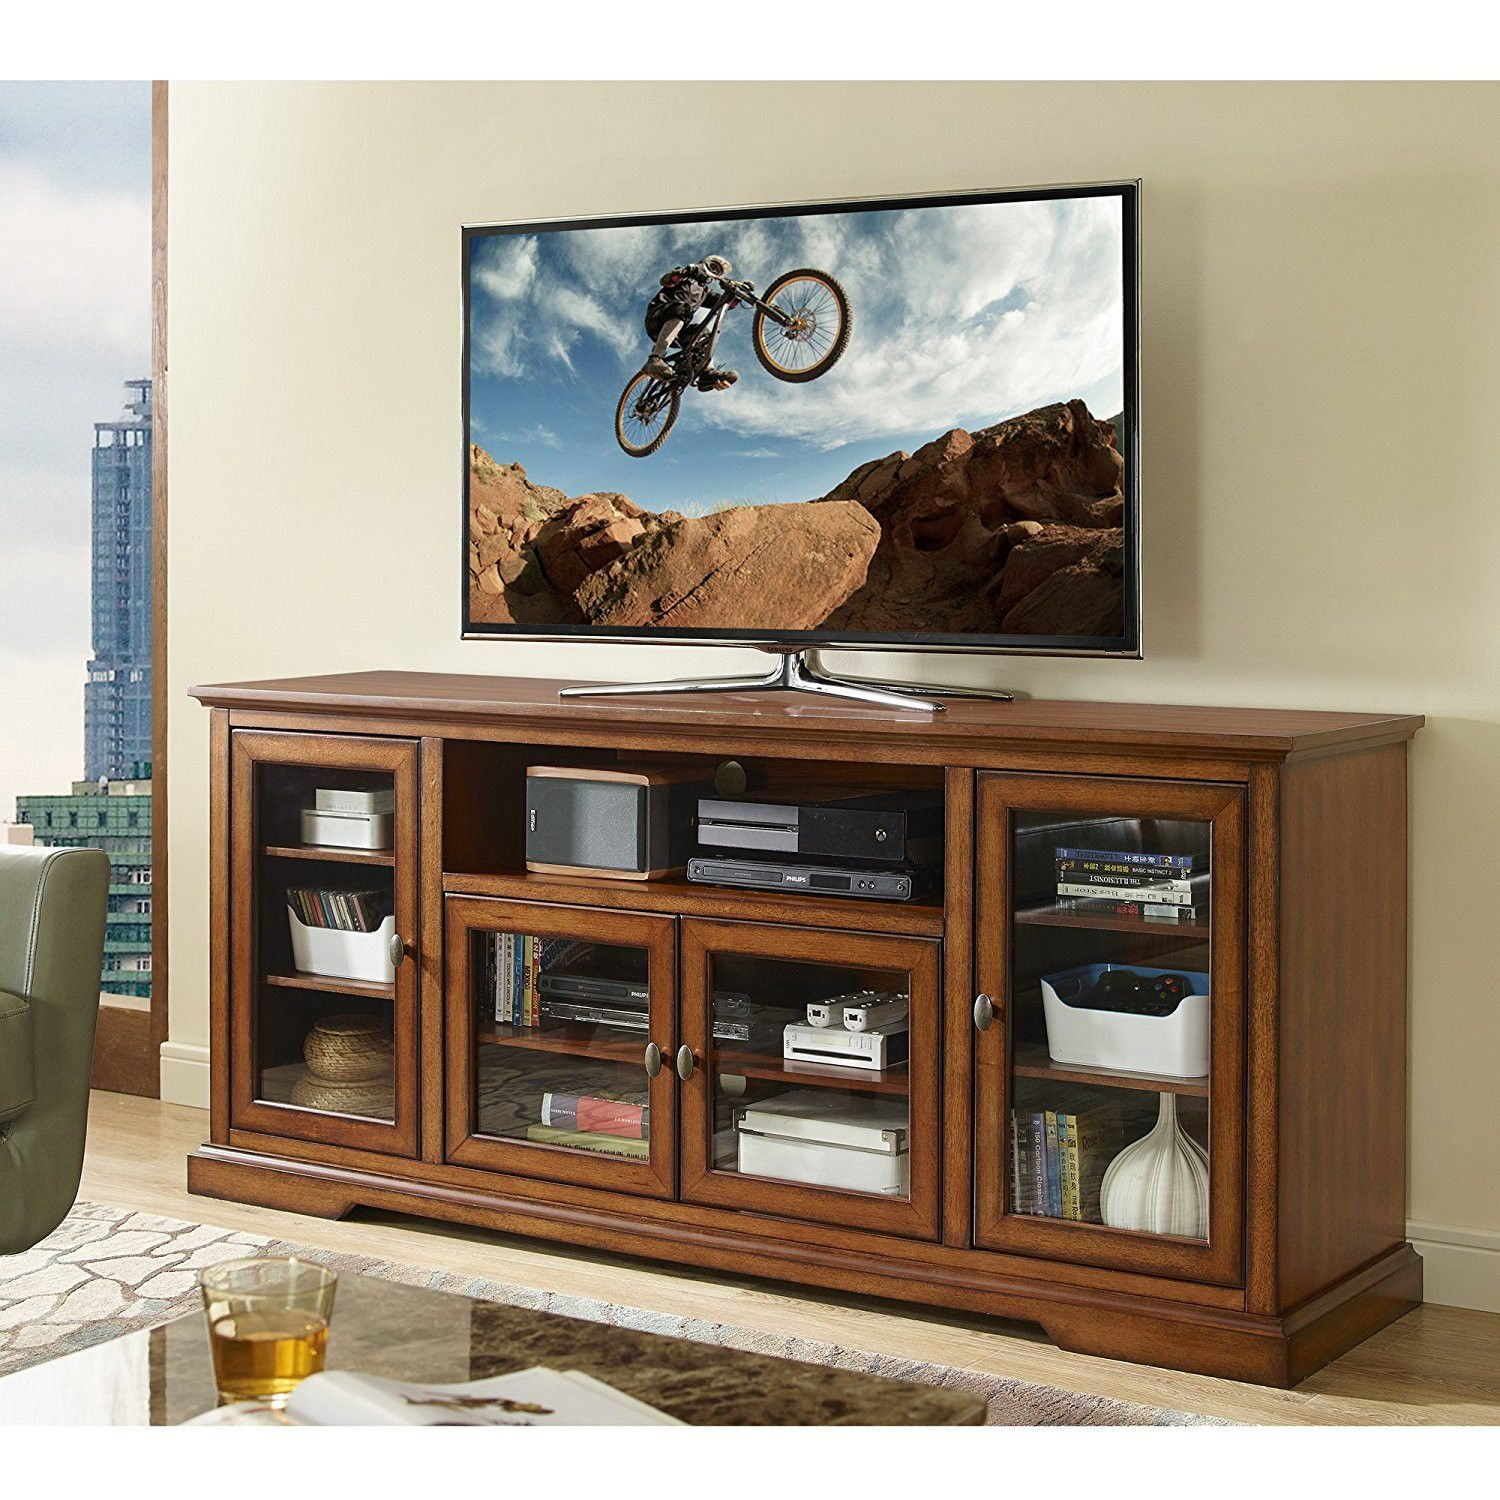 Merveilleux 2018 Tv Cabinet For 70 Inch Tv   Kitchen Decor Theme Ideas Check More At  Http